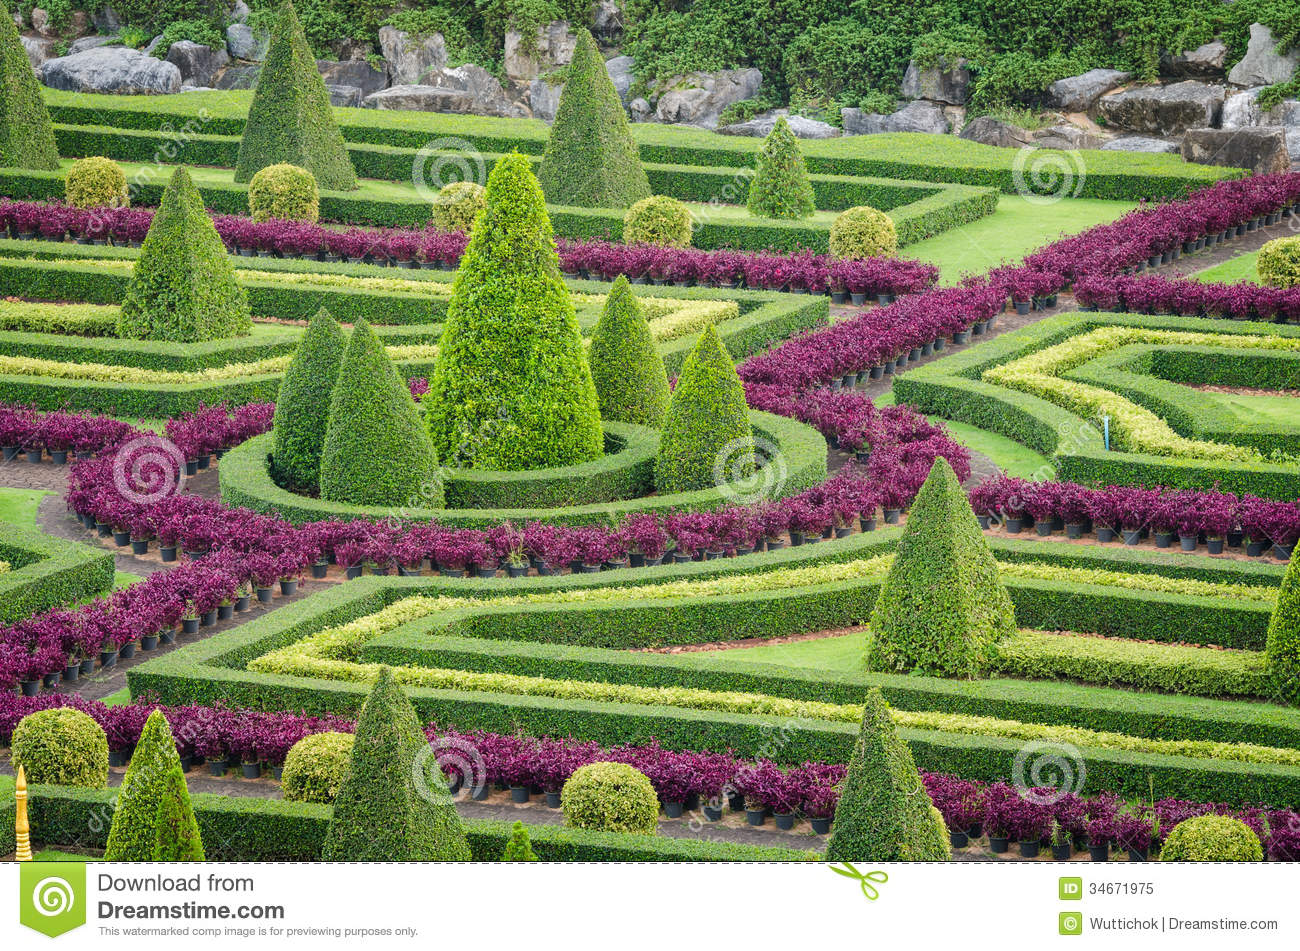 ... Landscape In Nature Garden Royalty Free Stock Photo - Image: 34671975: www.dreamstime.com/royalty-free-stock-photo-ornamental-plants-tree...